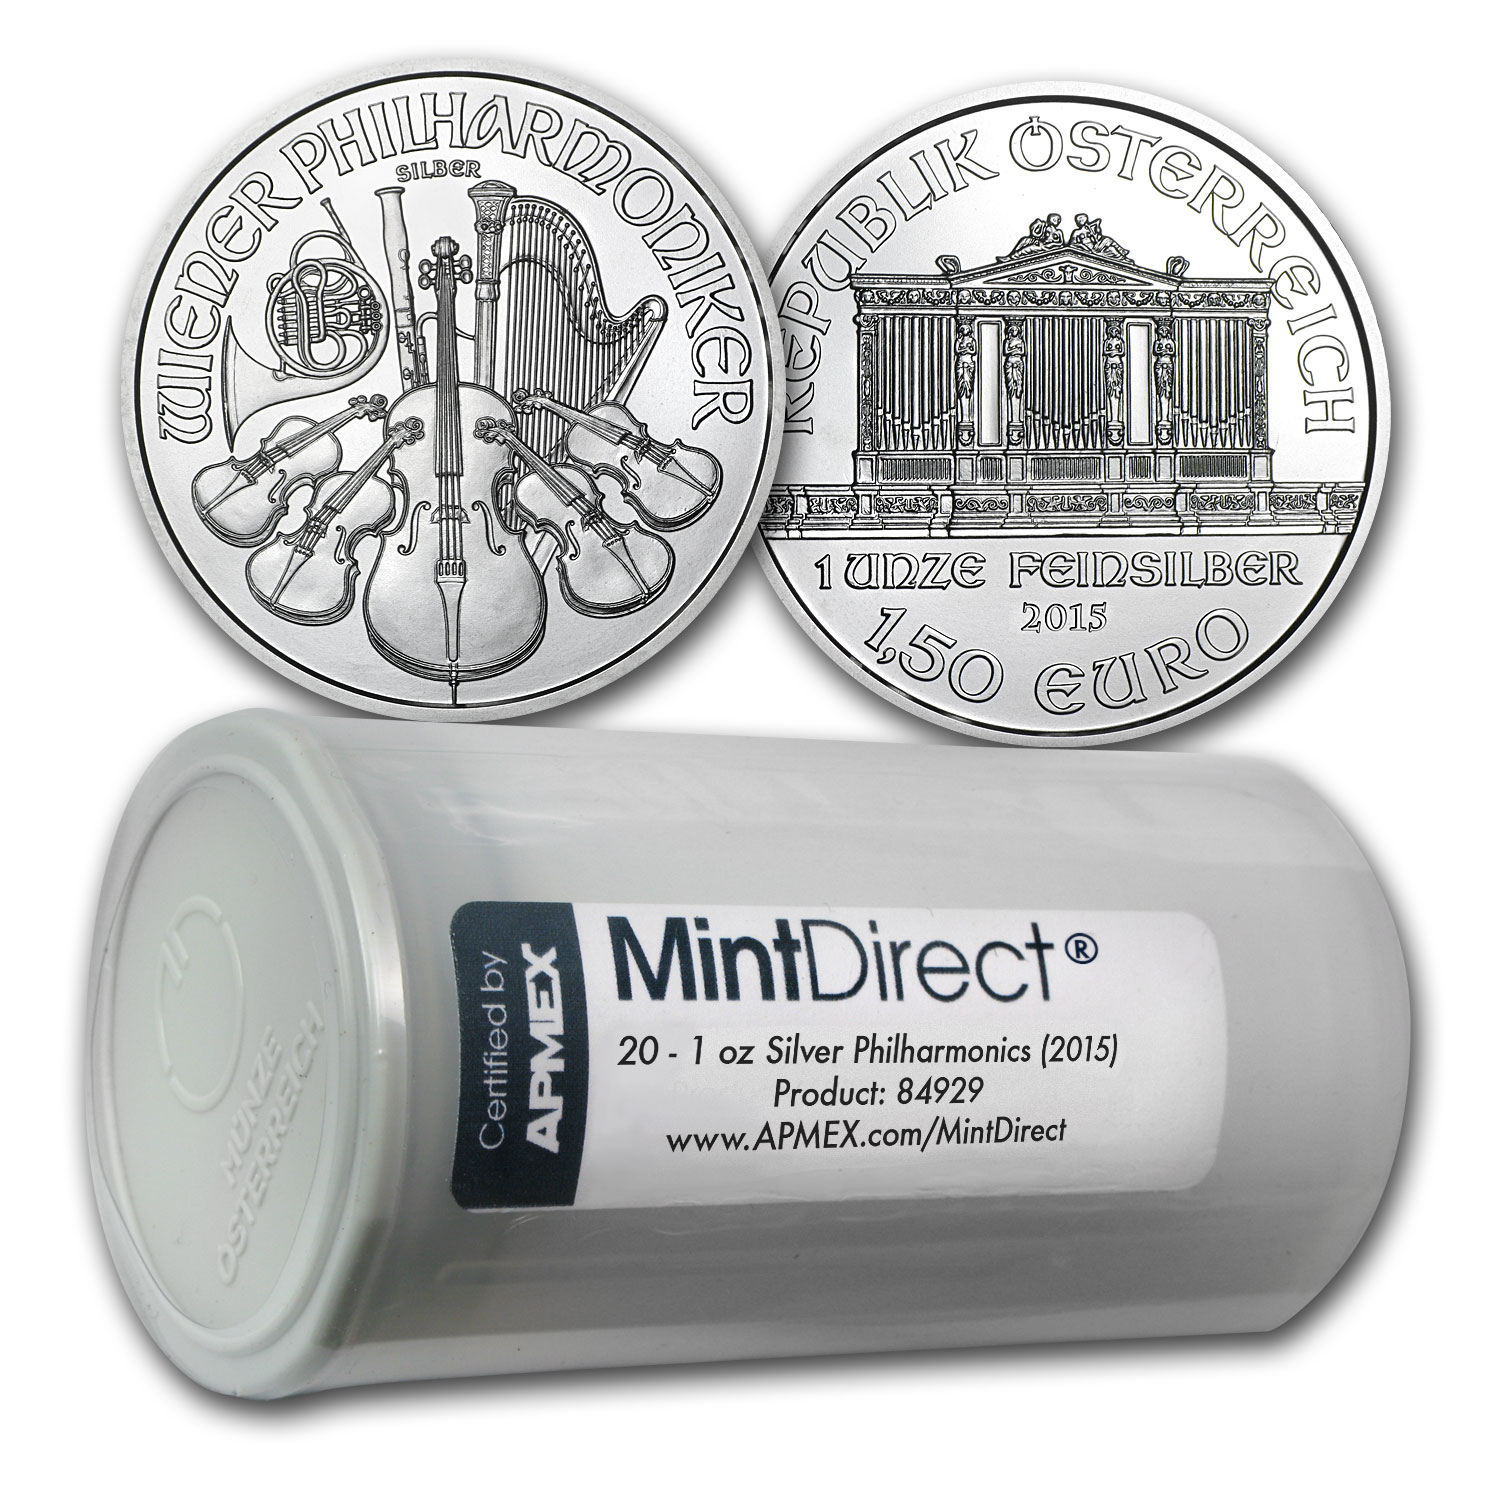 2015 1 oz Silver Philharmonics (20-Coin MintDirect® Tube)